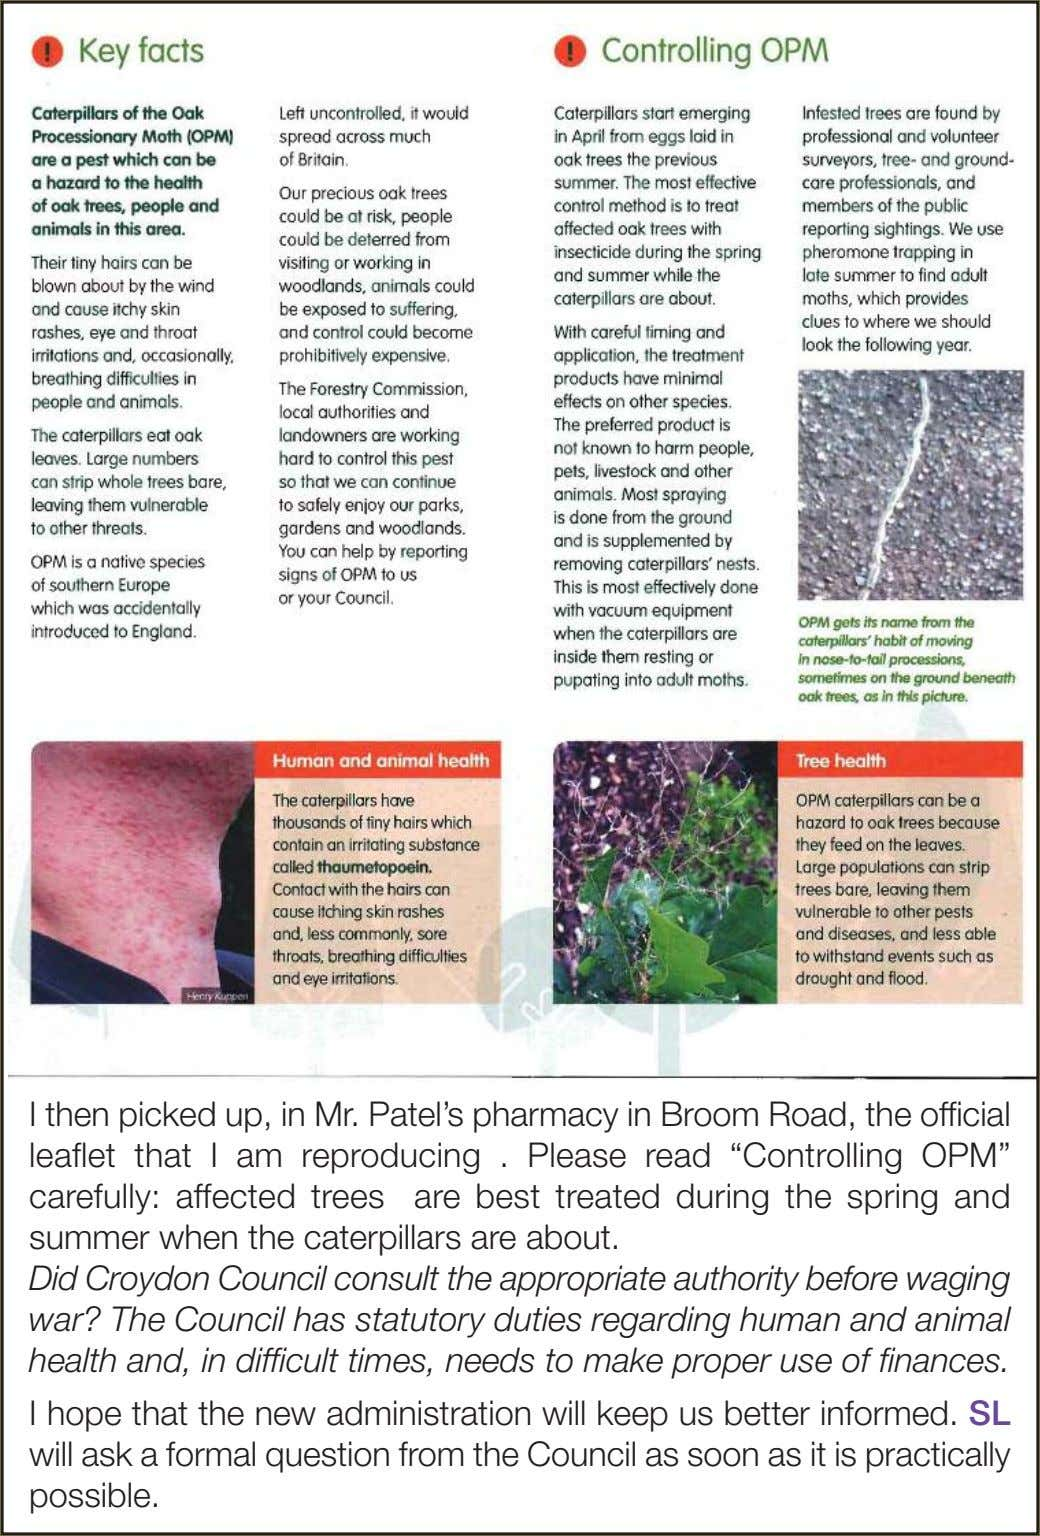 I then picked up, in Mr. Patel's pharmacy in Broom Road, the official leaflet that